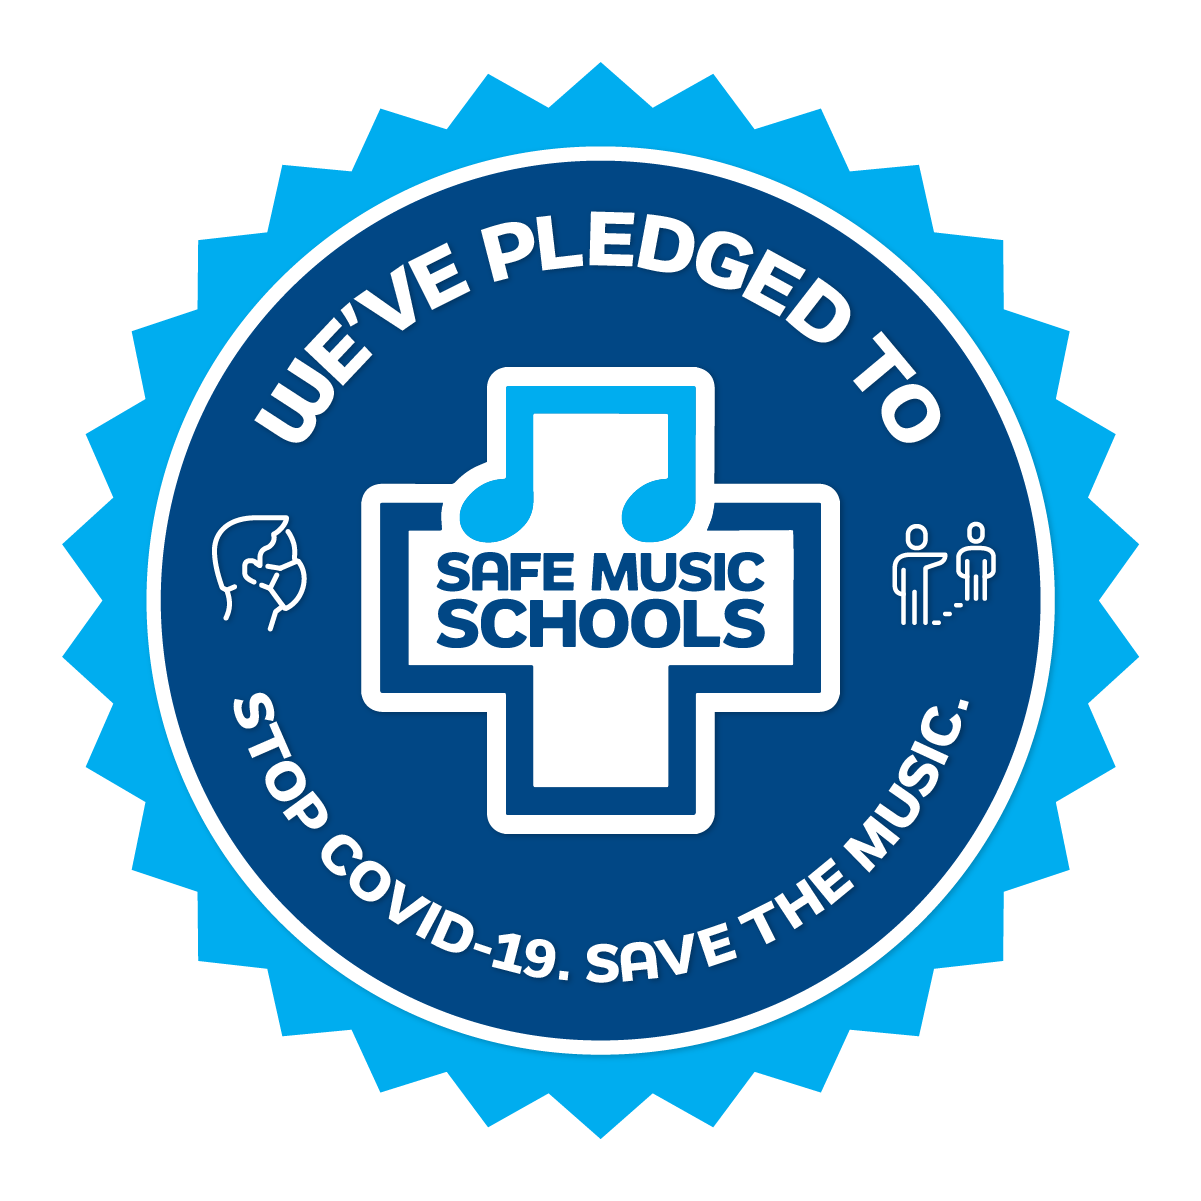 Boston School of Music Arts is  Covid19 safe music school